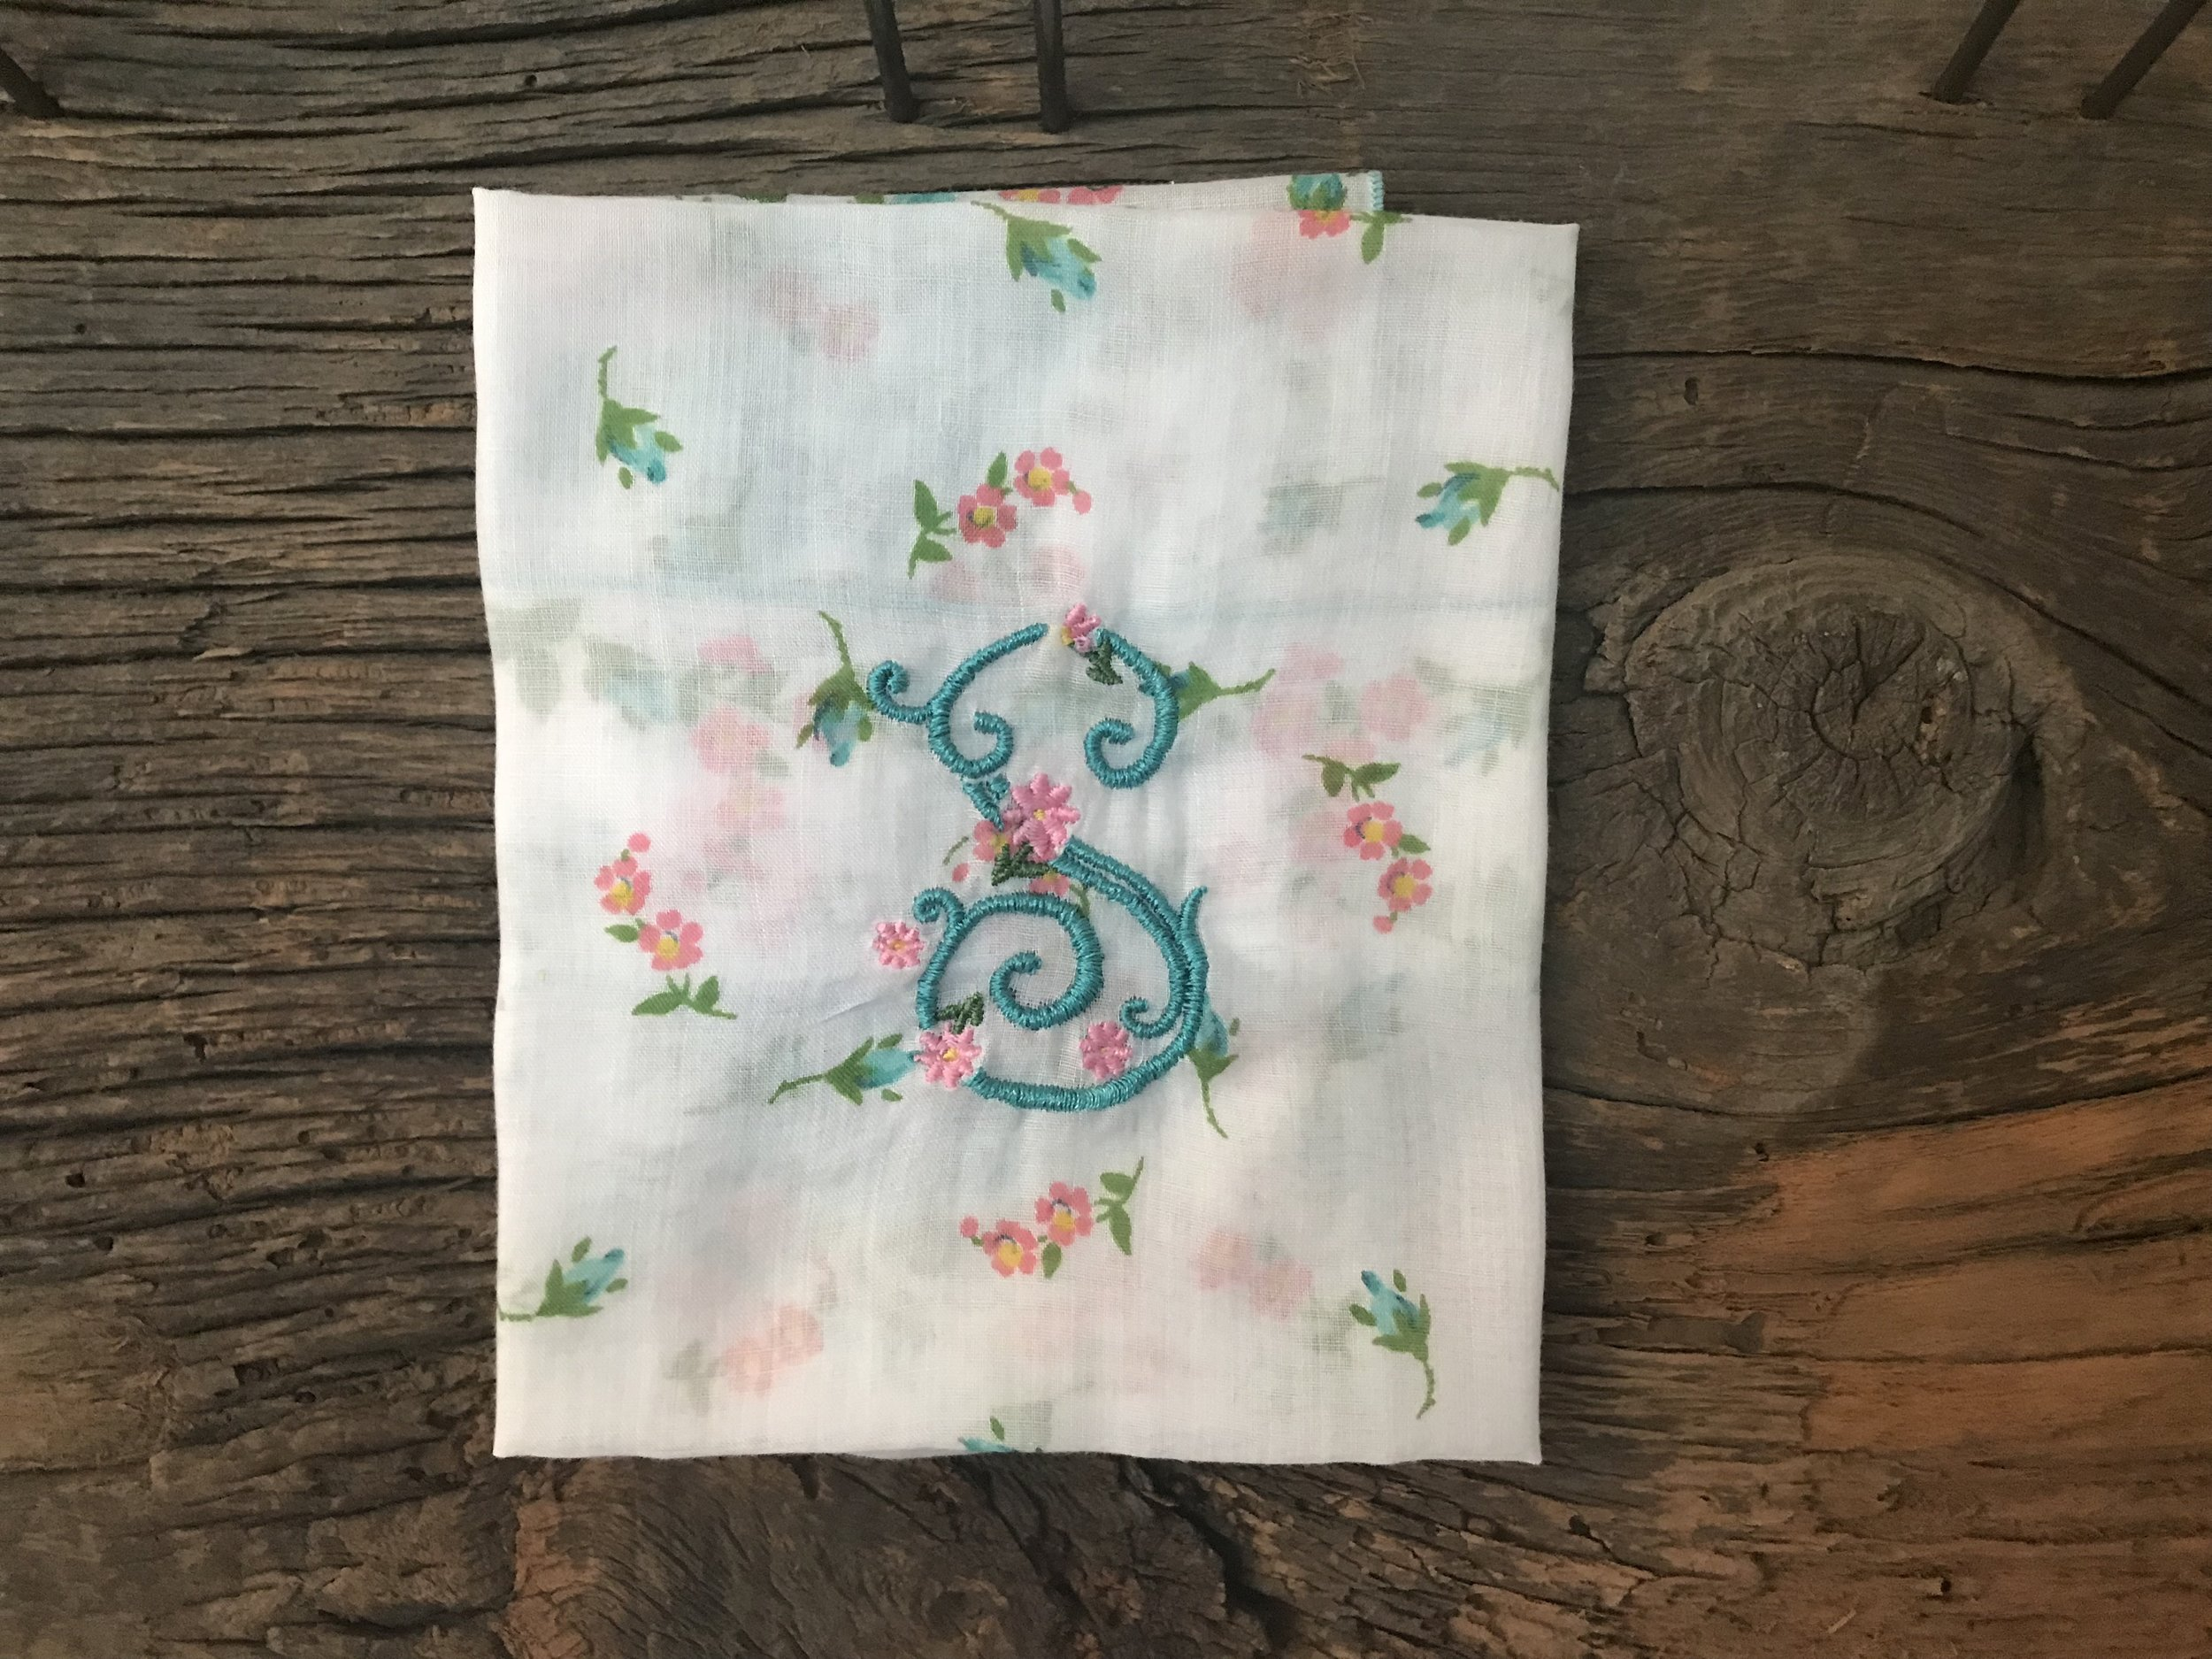 Vintage Handkerchief with Rose S Monogram